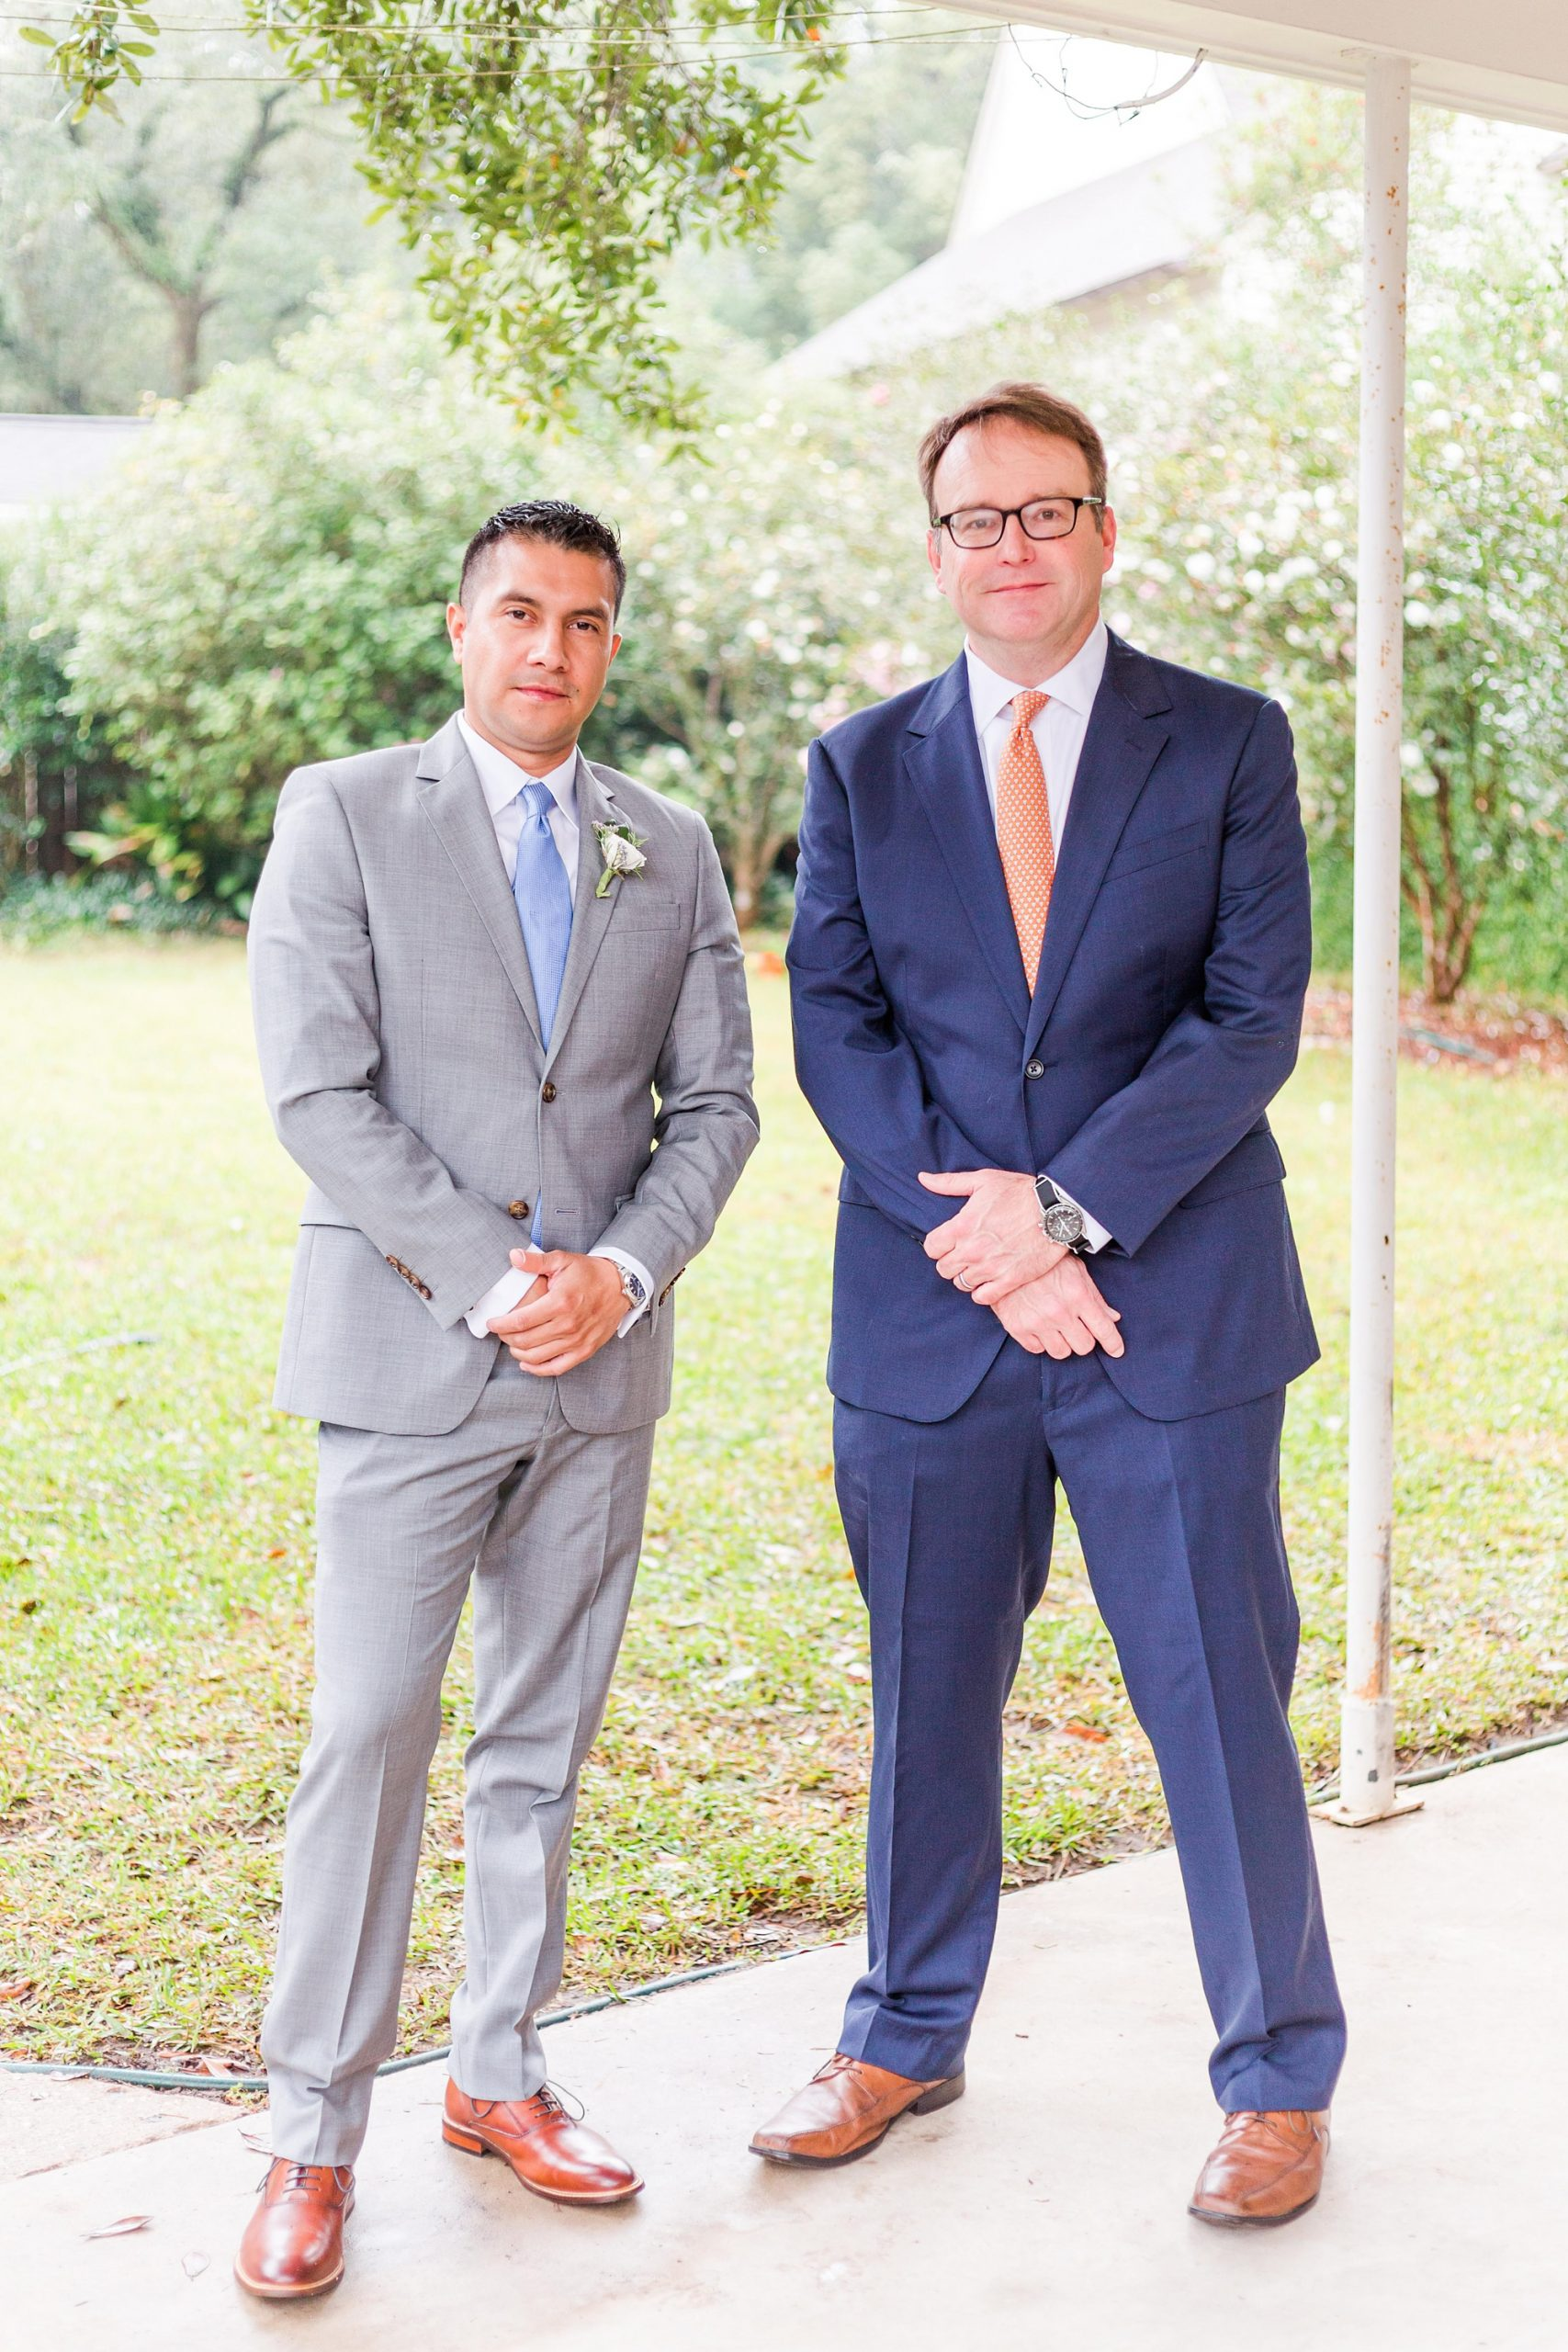 groom poses with family during wedding day prep